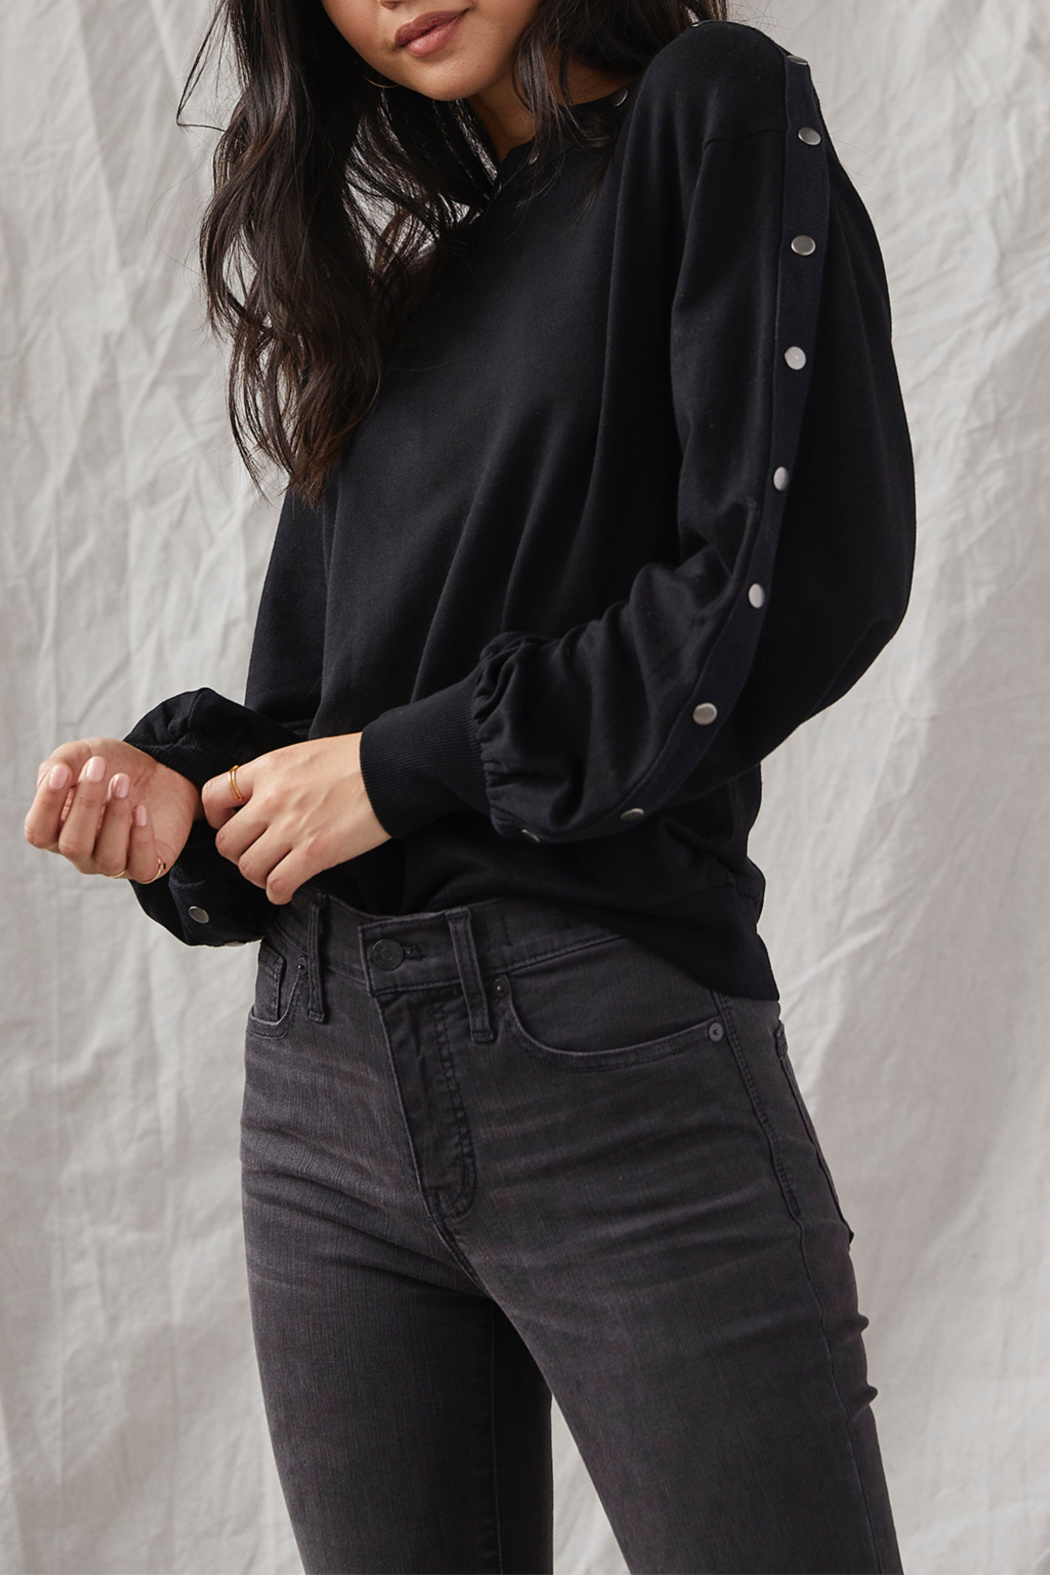 Grey State Tilly Snap-around L/S Top - Main Image